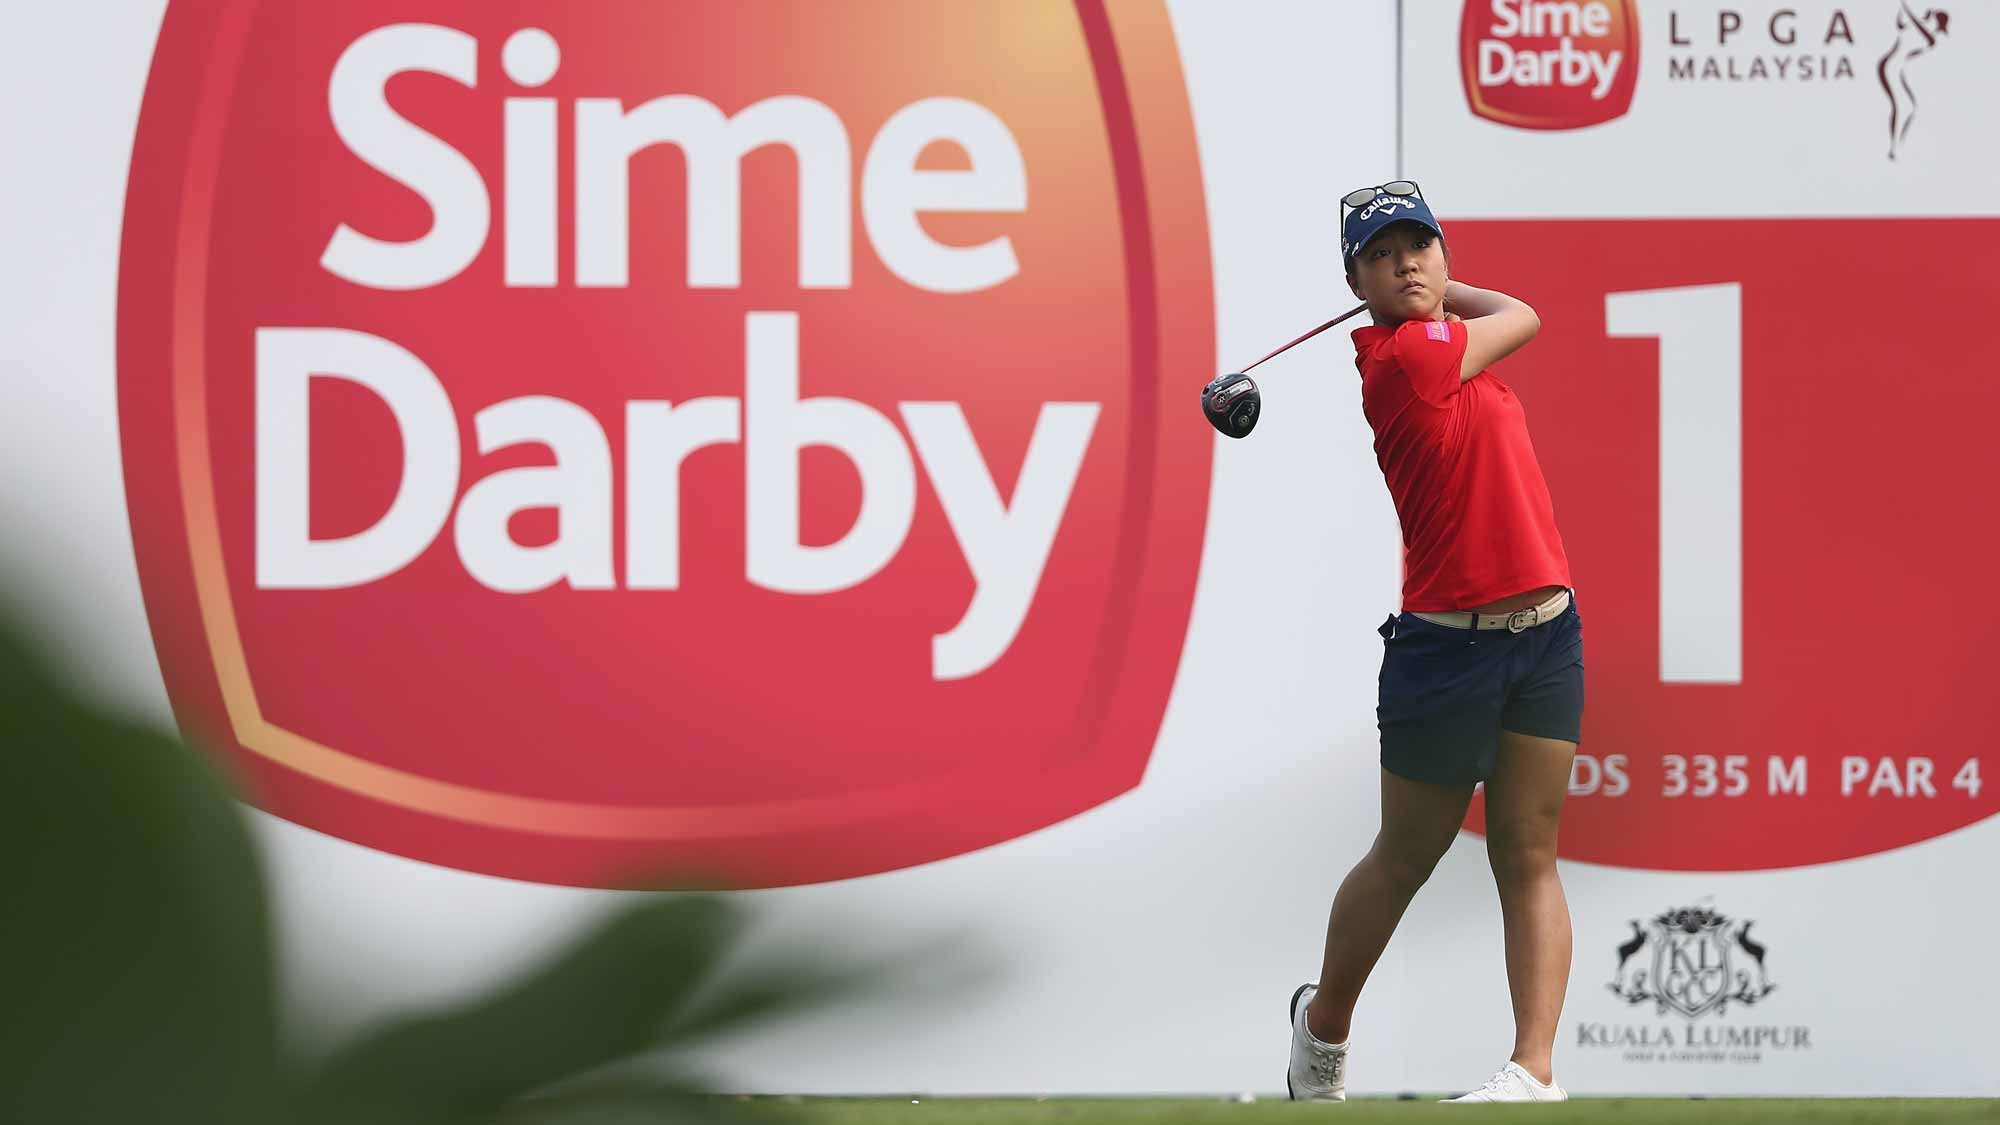 Lydia Ko of New Zealand watches her tee shot on the 1st hole during the final round of the Sime Darby LPGA Tour at Kuala Lumpur Golf & Country Club